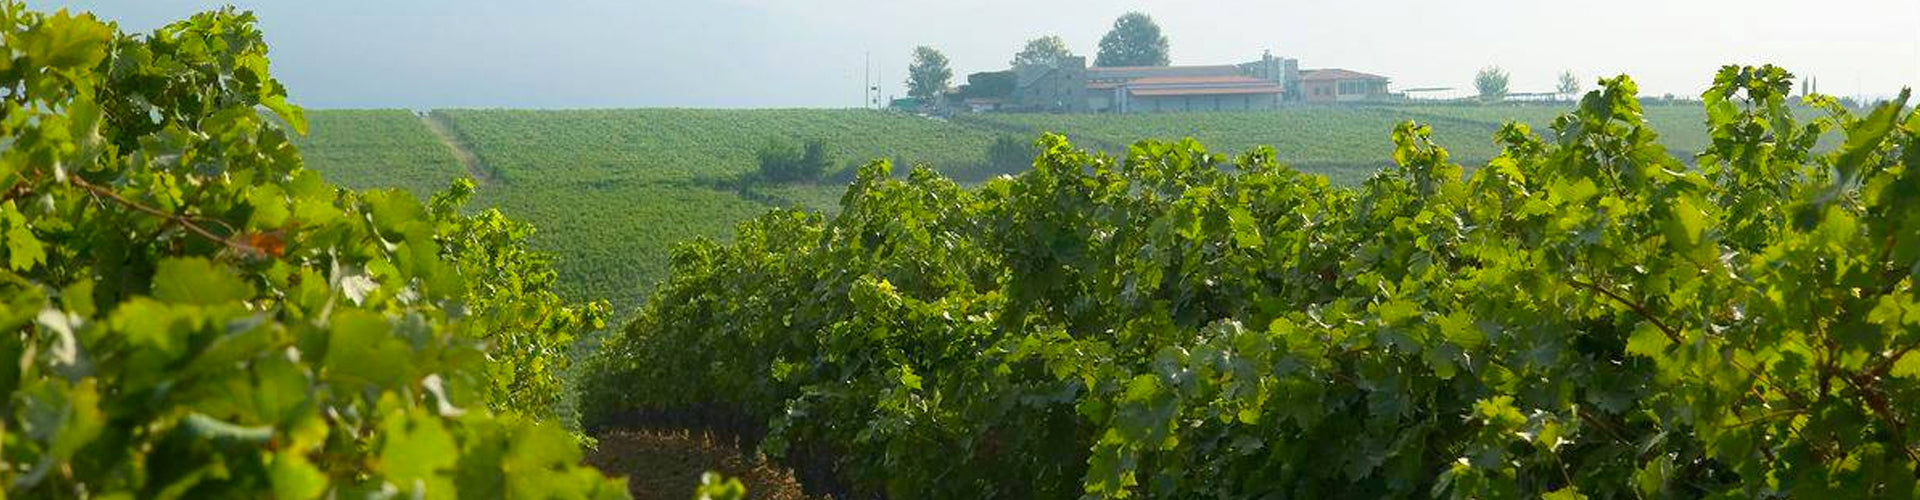 Ktima Gerovassiliou Vineyards in Epanomi, Greece